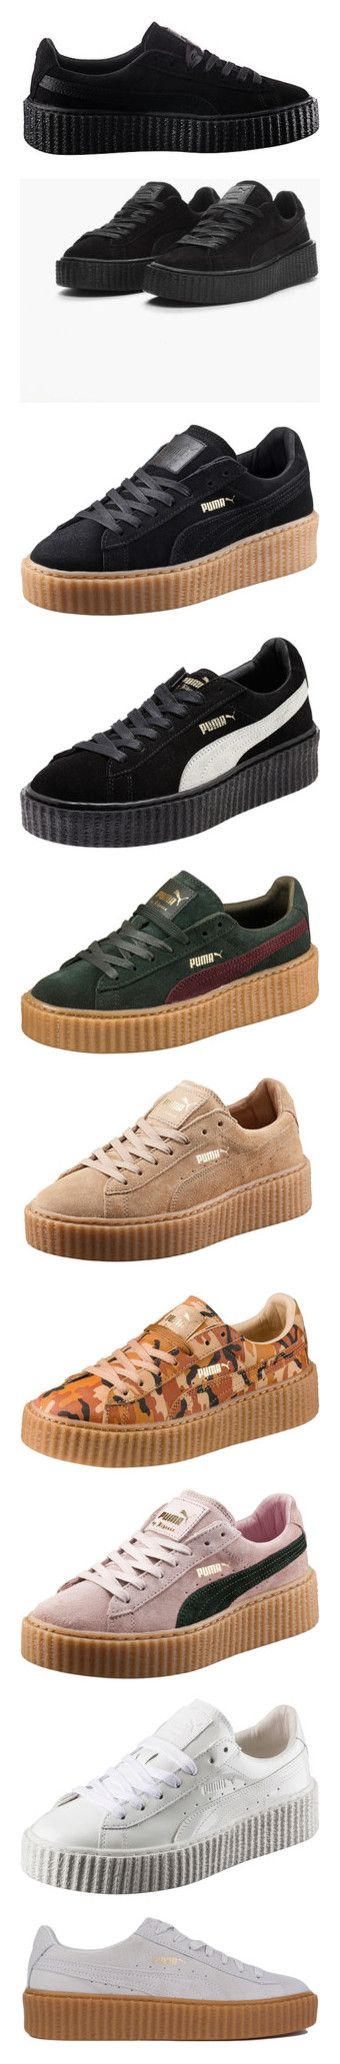 """""""rihanna puma"""" by sabaaaa ❤ liked on Polyvore featuring men's fashion, men's shoes, men's sneakers, shoes, sneakers, puma, tenis, mens shoes, mens platform sneakers and mens creeper shoes"""